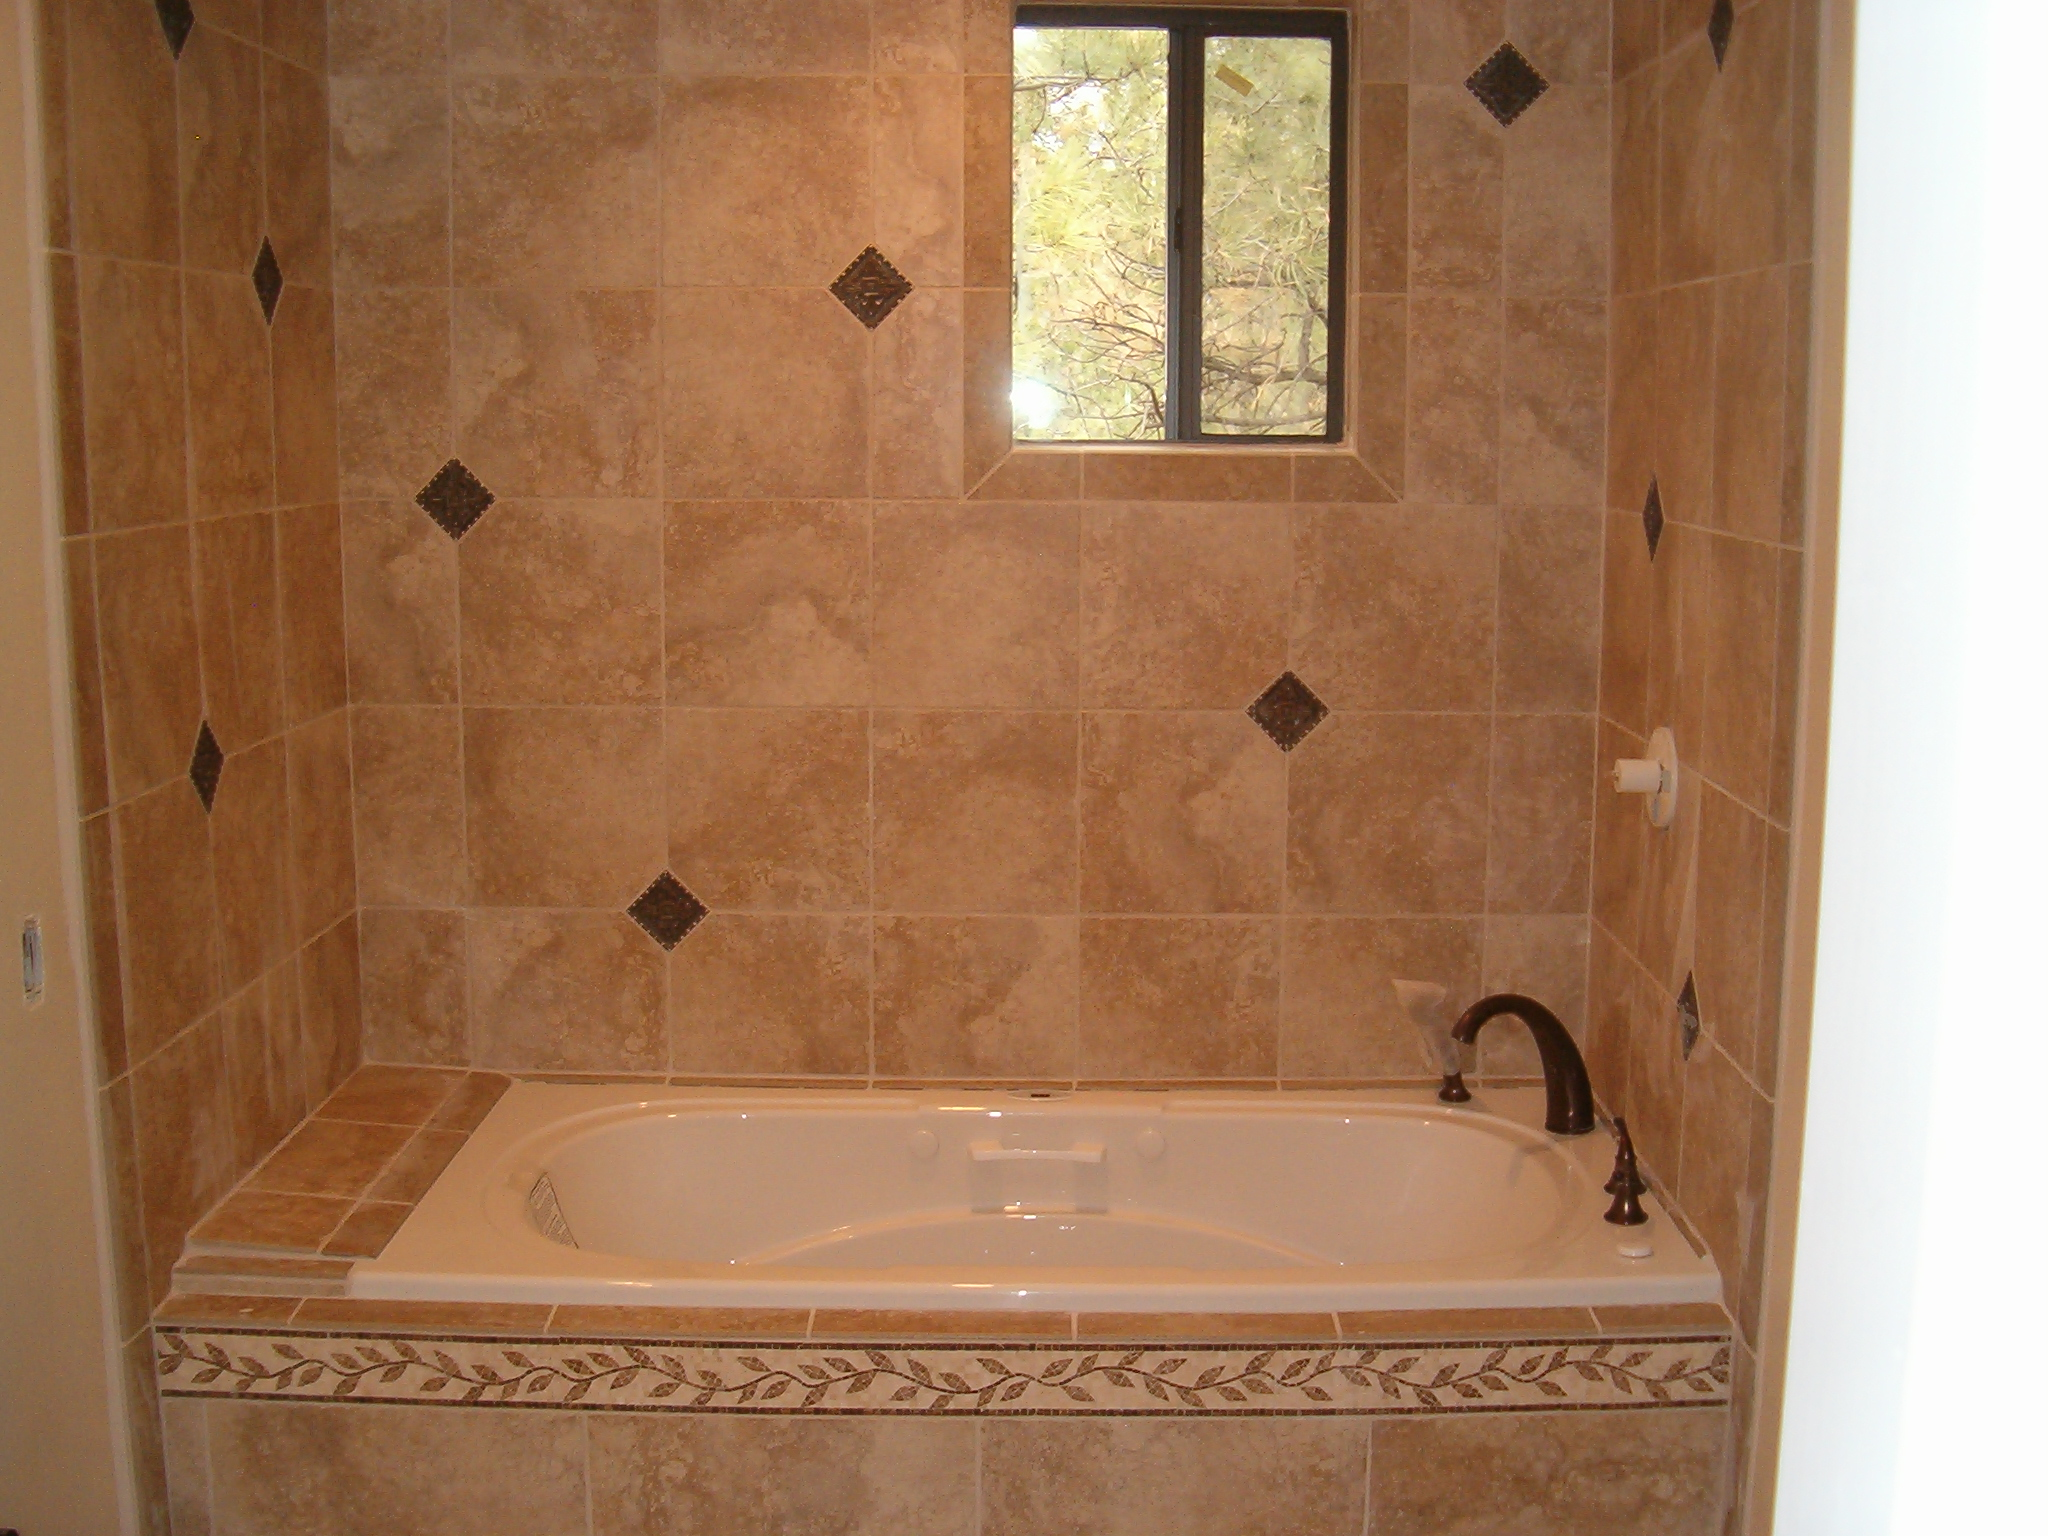 images of bathroom tile  bathroom tile design ideas backsplash and floor designs